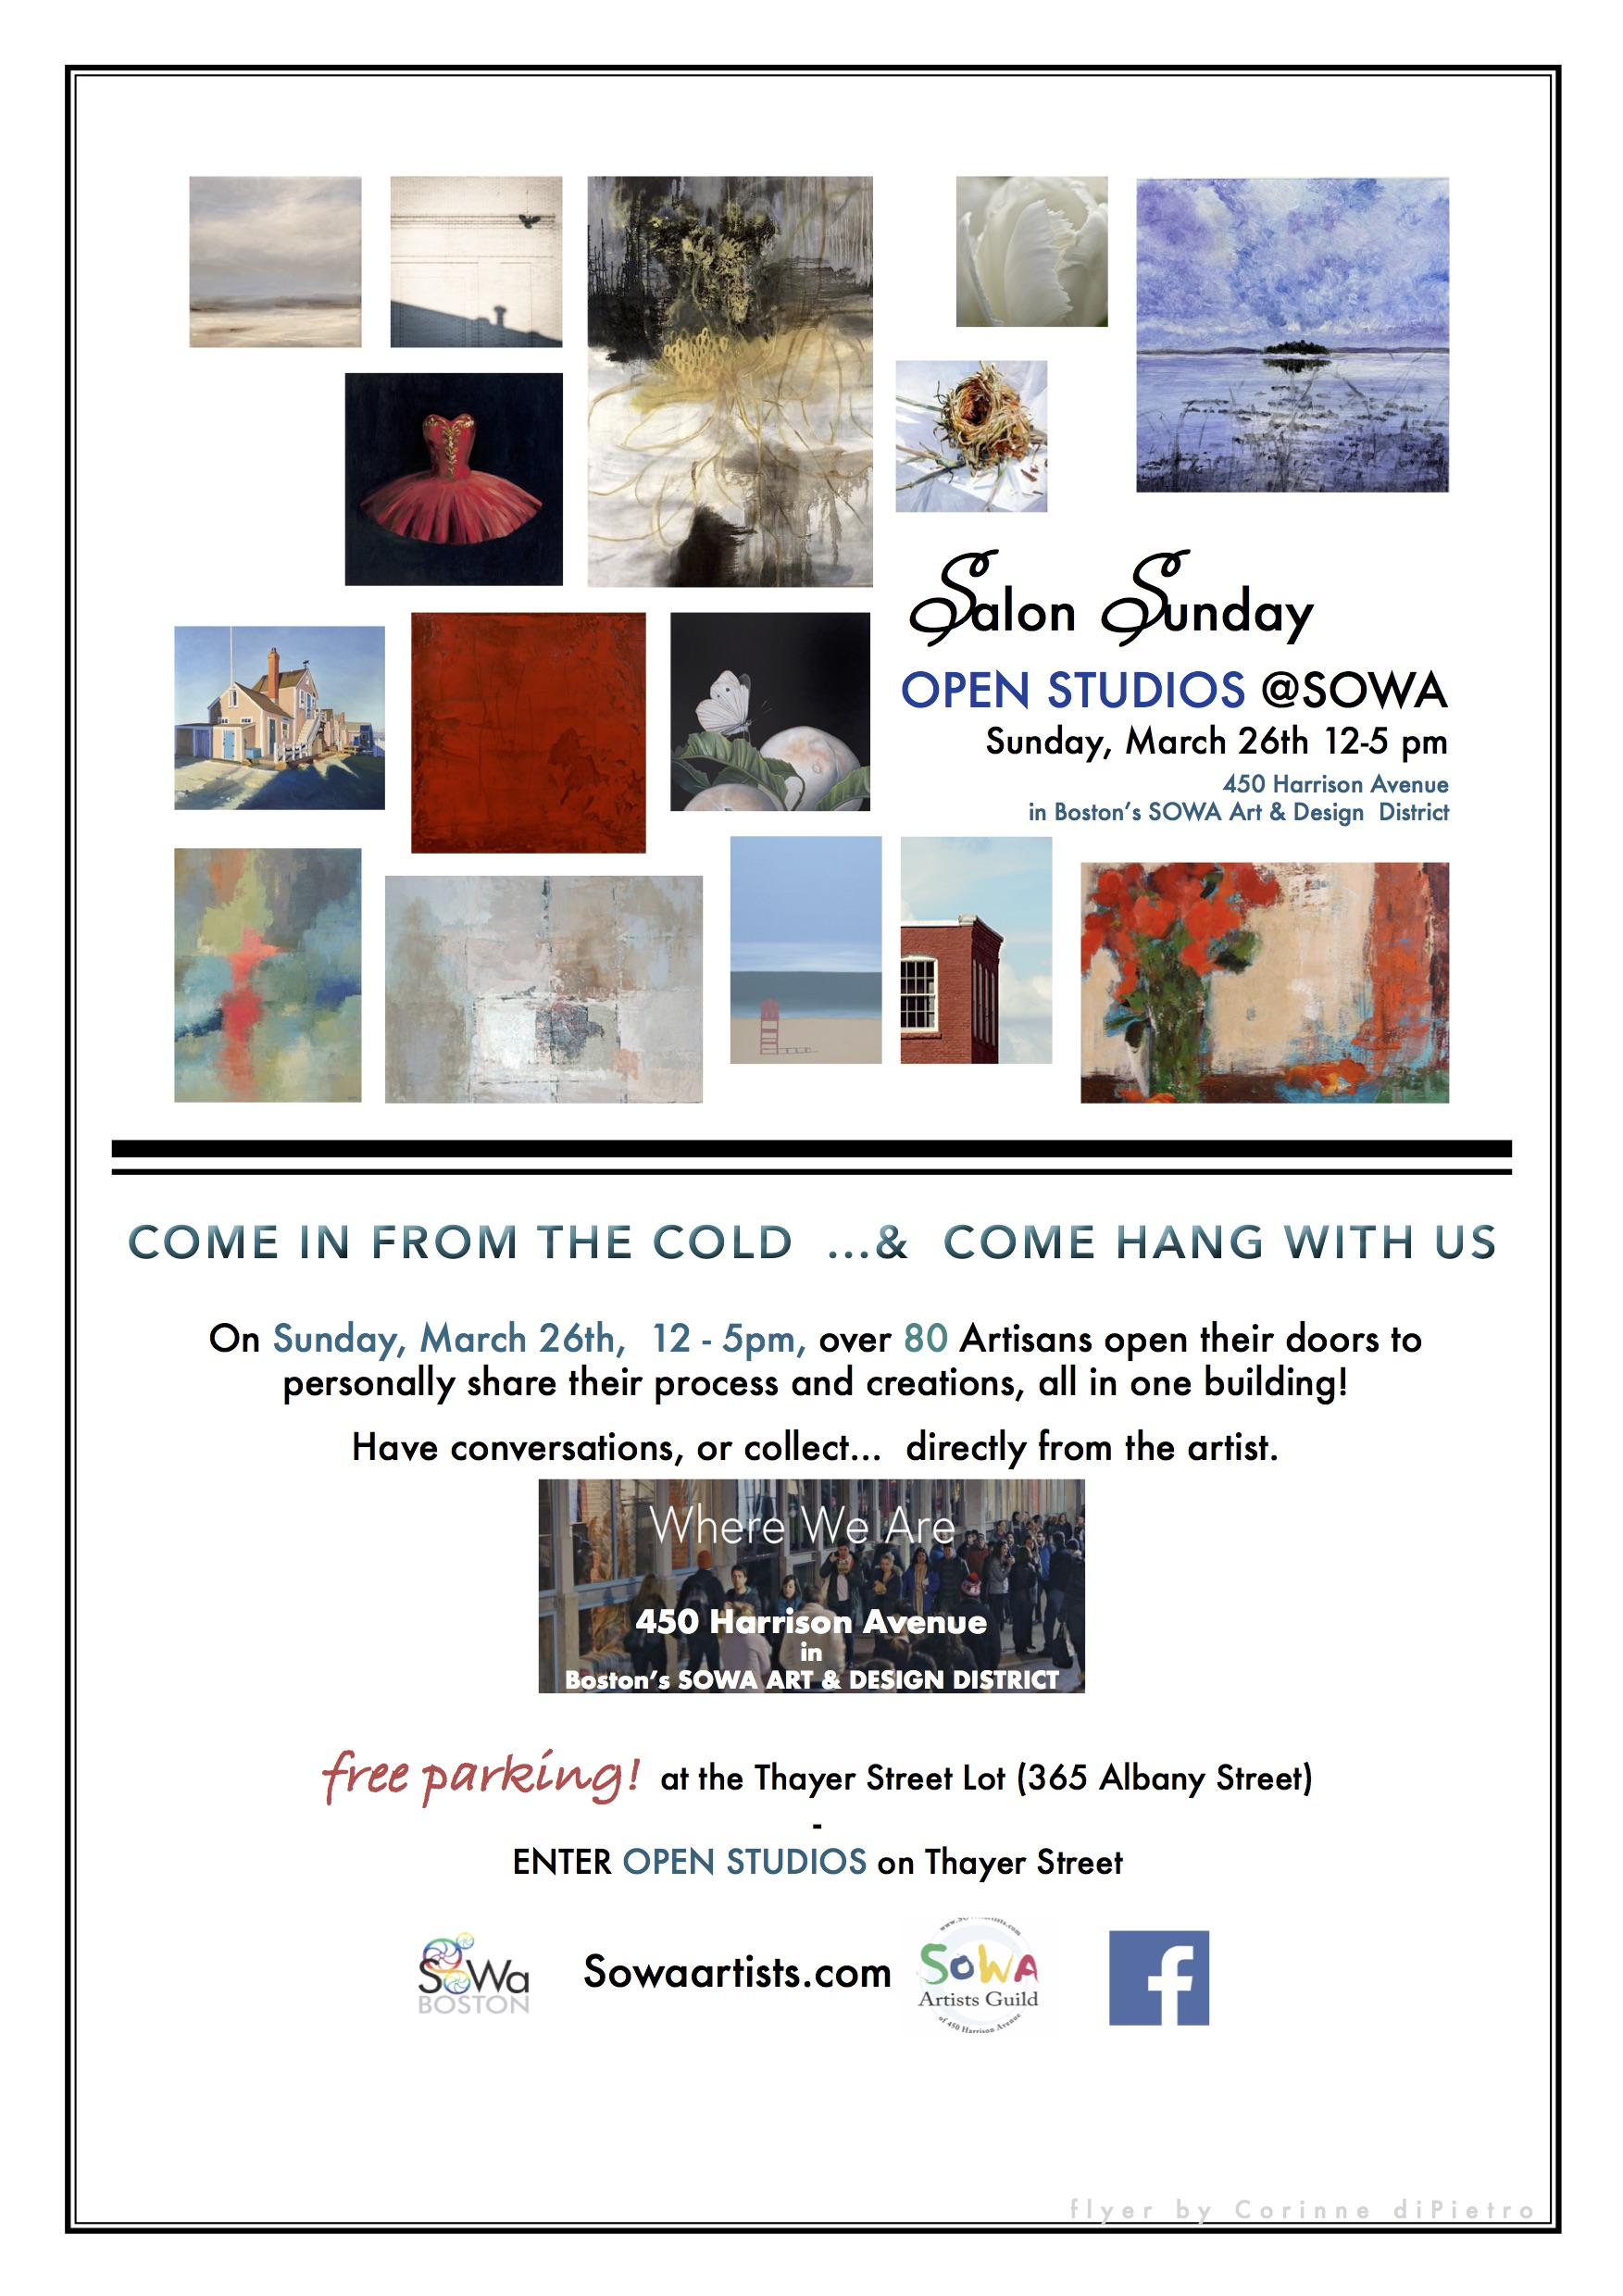 Salon Sunday Open Studios